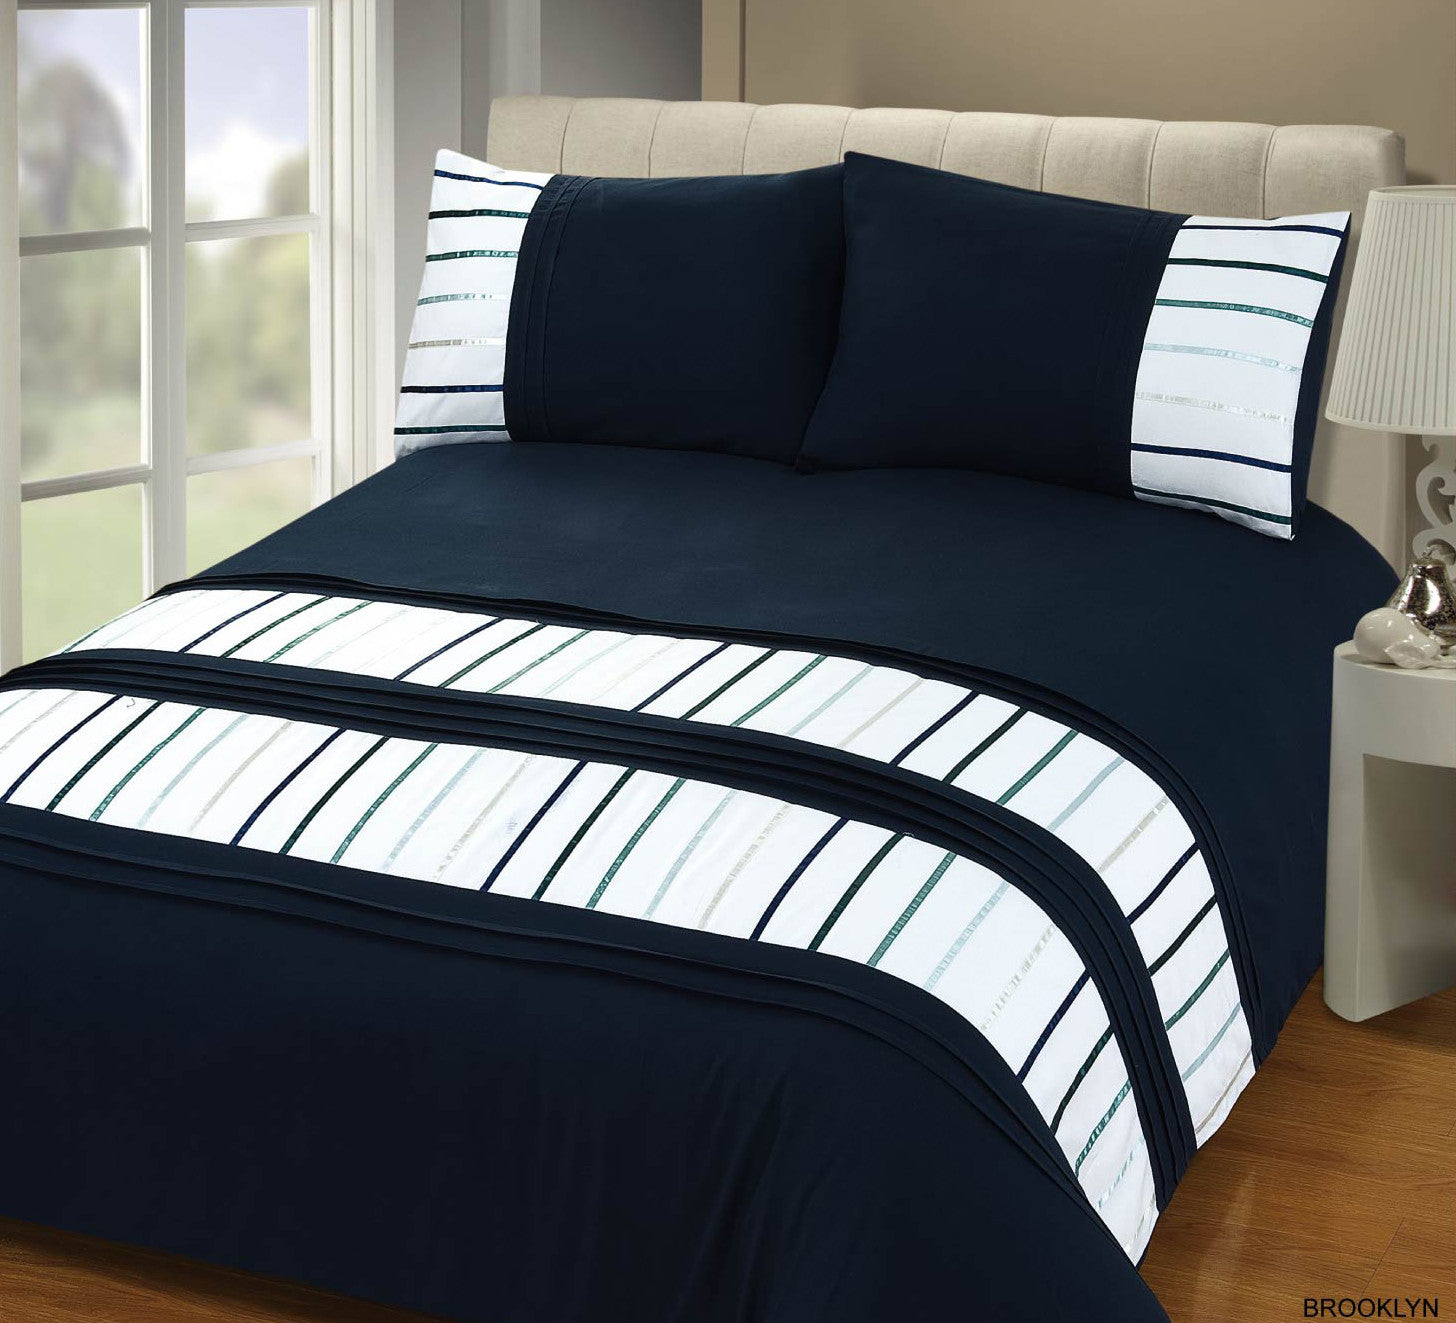 Brooklyn Duvet Sets